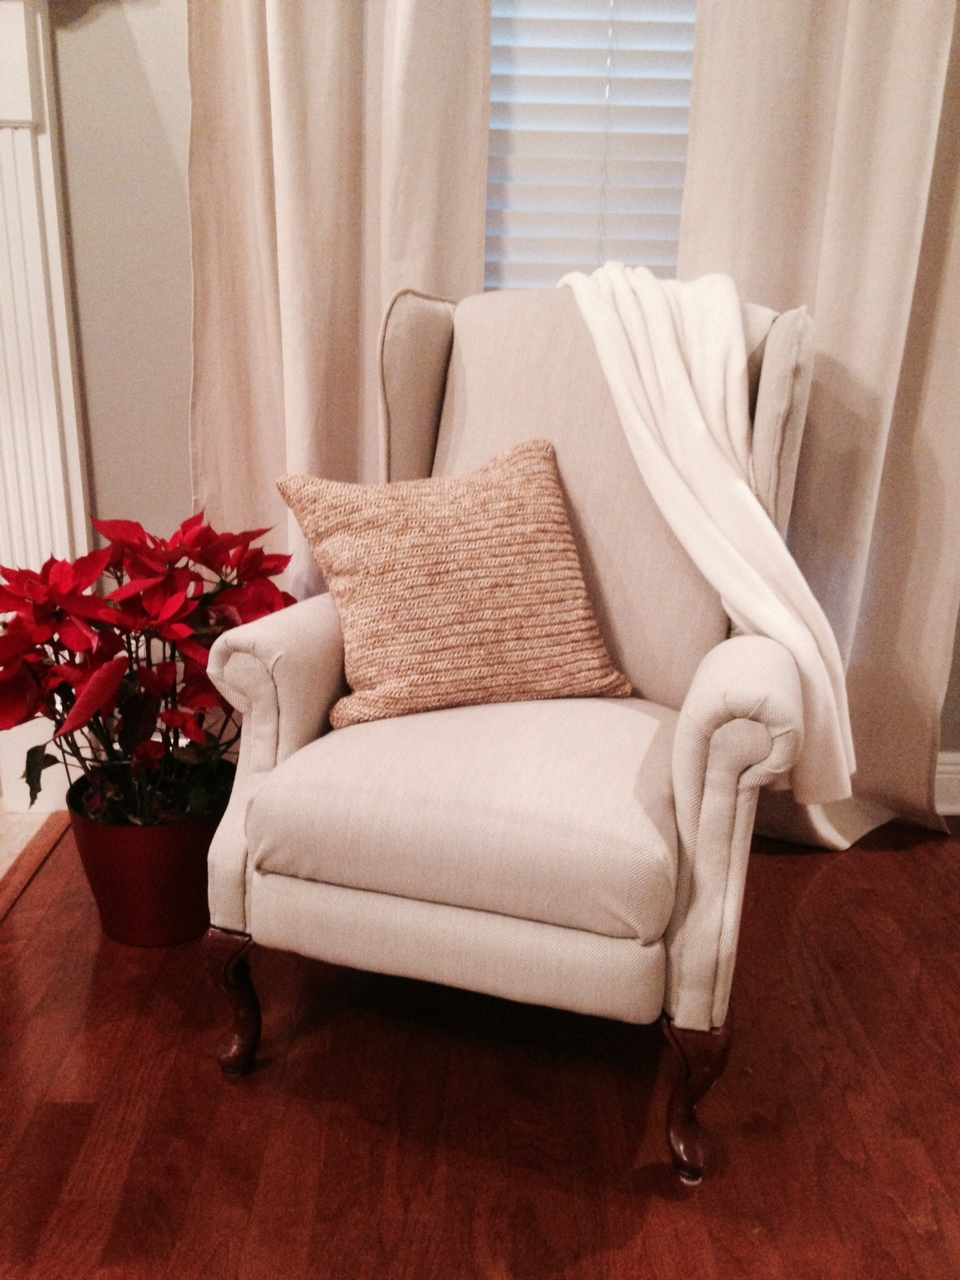 re uphosltered wingback chair diystinctly made